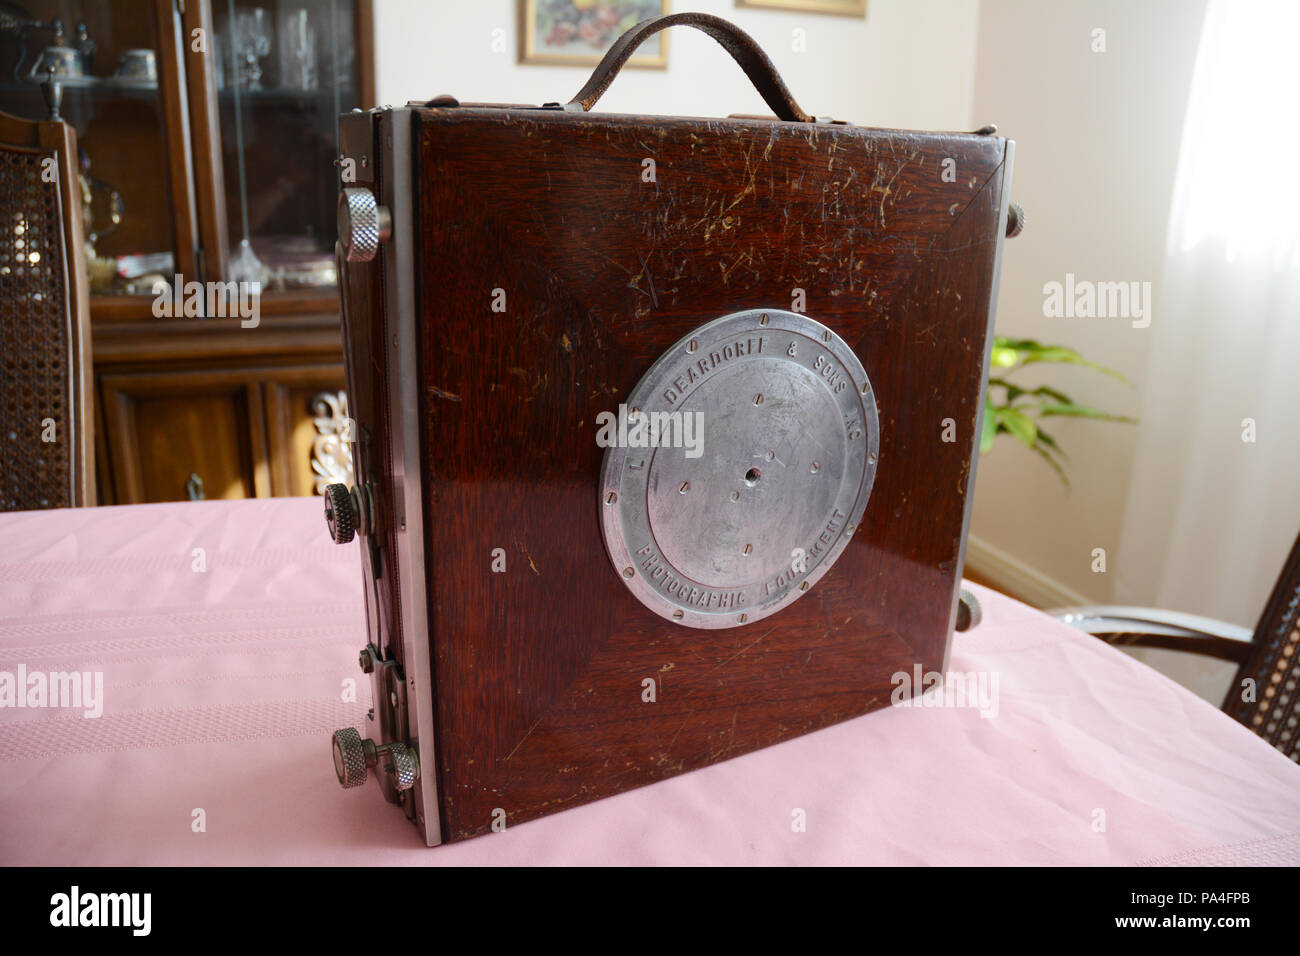 The front of a foldable large format Deardorff antique 8x10 analog field camera, in its collapsible form with carrying handle, built in the 1950s. - Stock Image